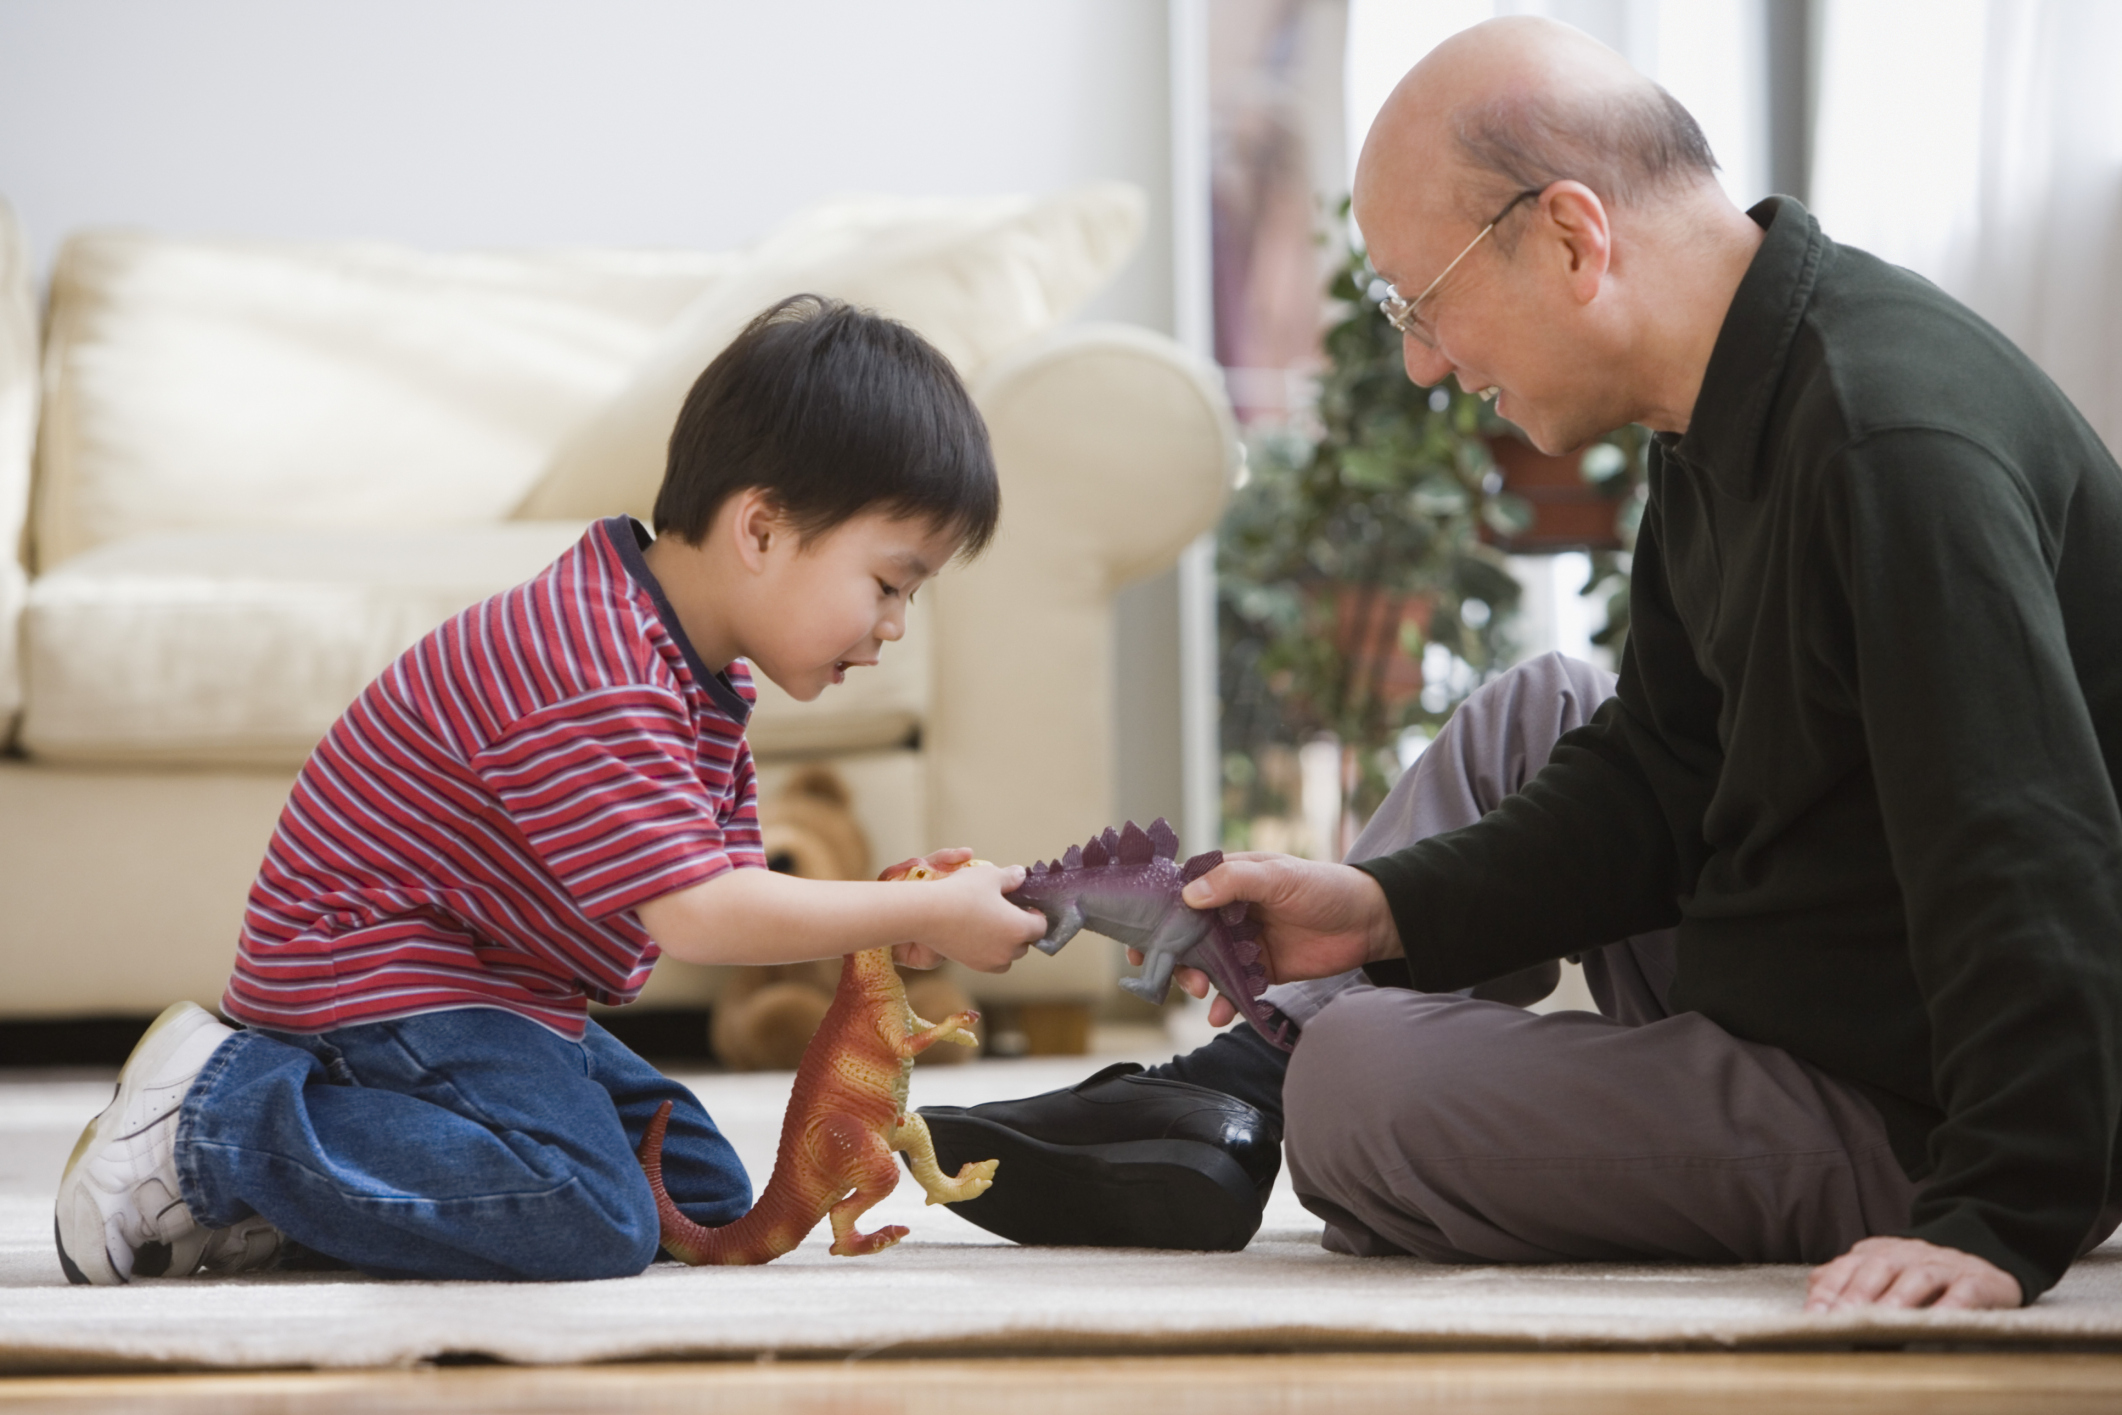 The Physical Development Of 3 To 5 Year Old Children